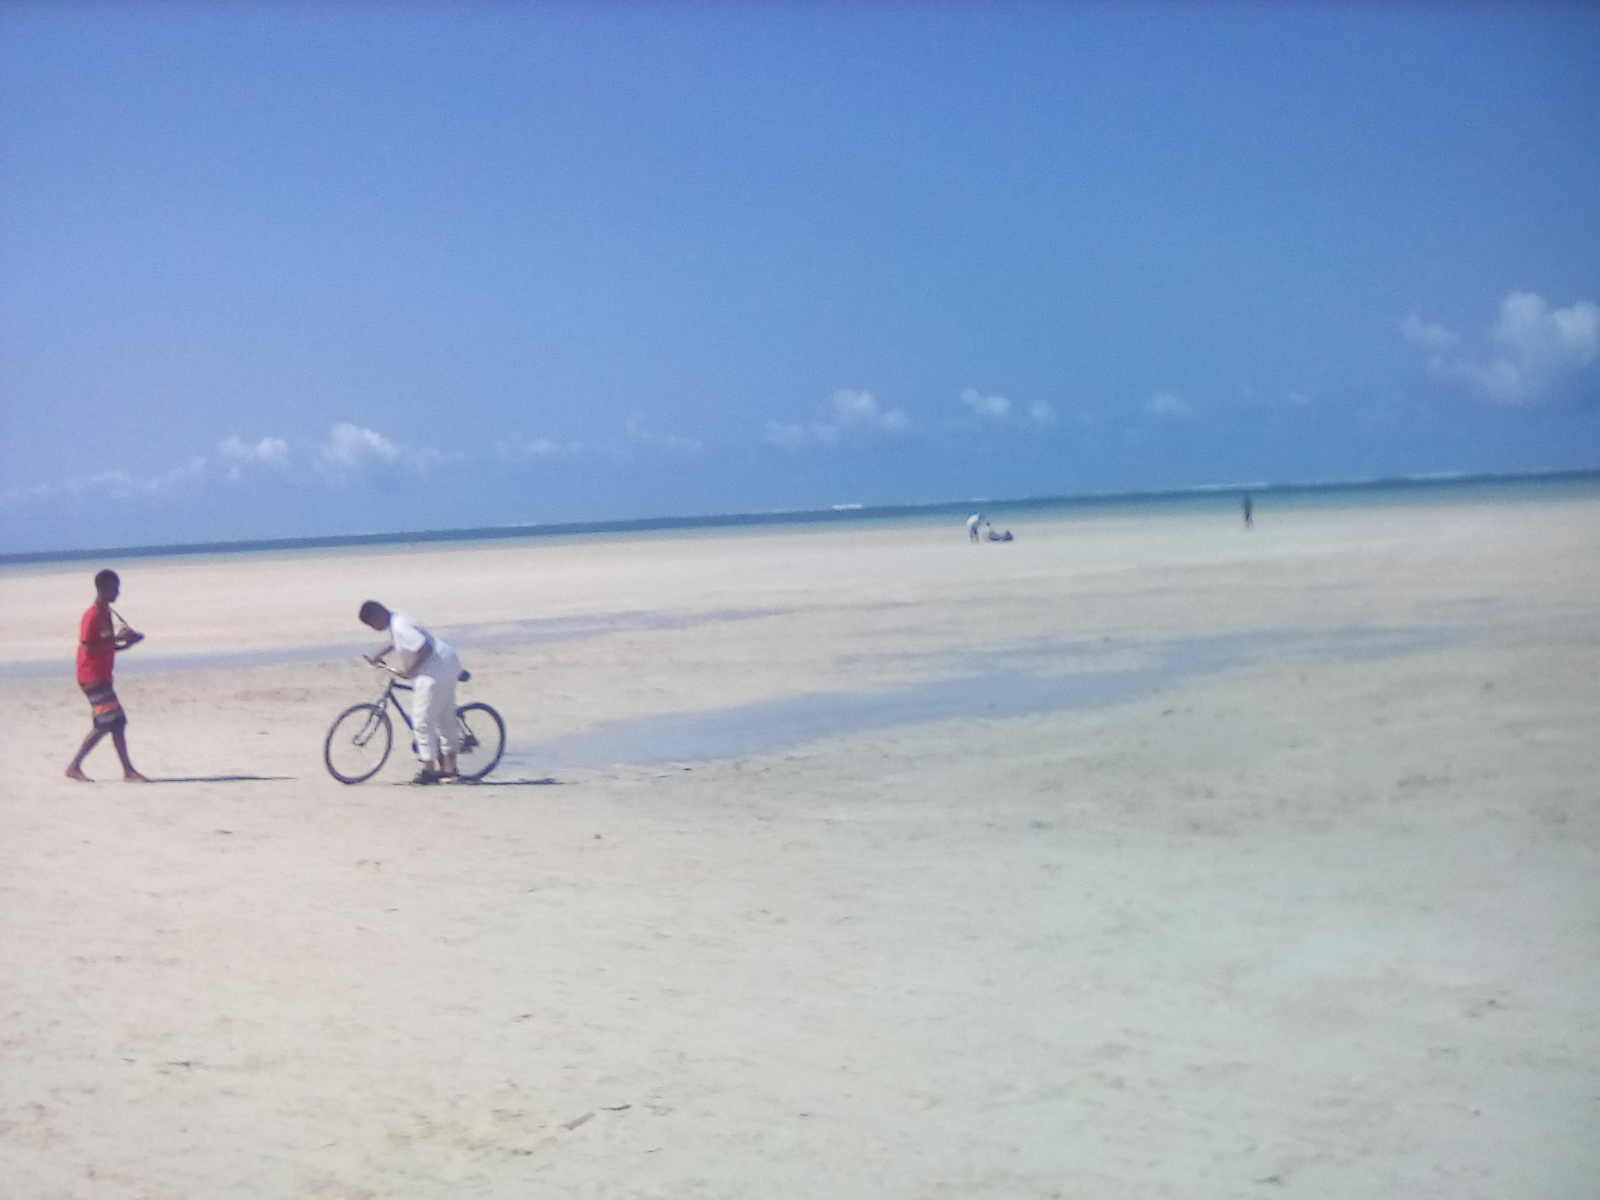 A ride in the sand on a sunny day. Beauty of Kenya. Mombasa